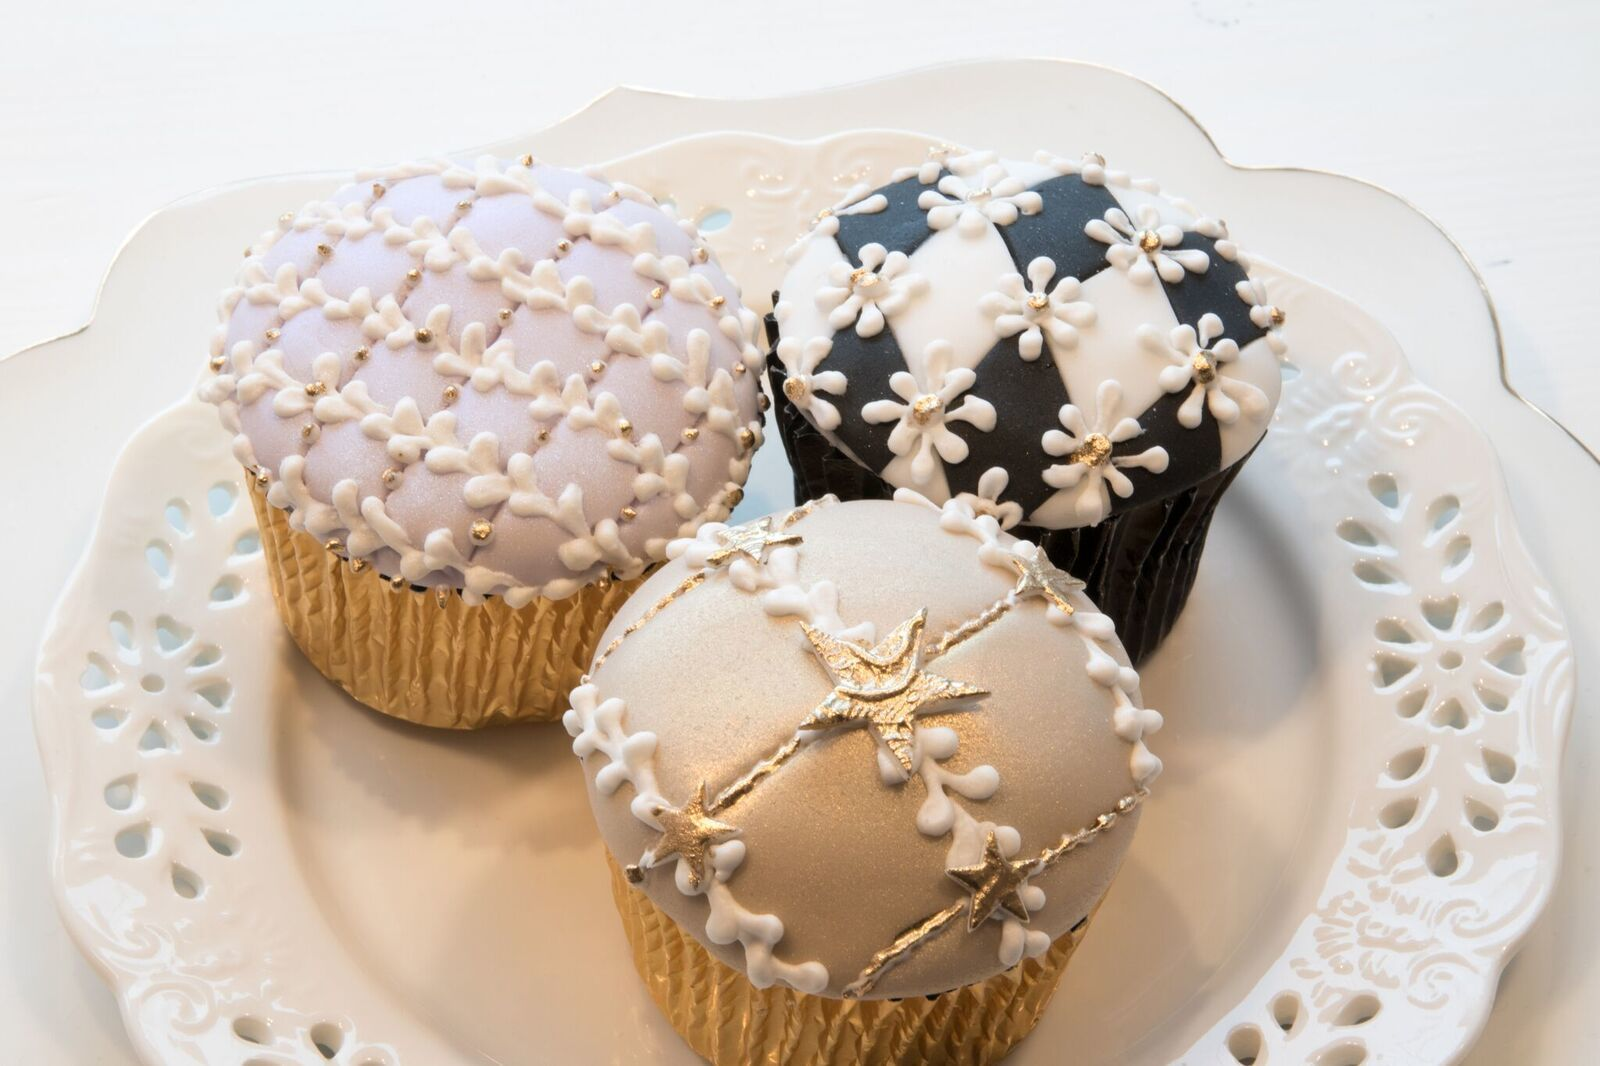 Criss Cross patterned cupcakes